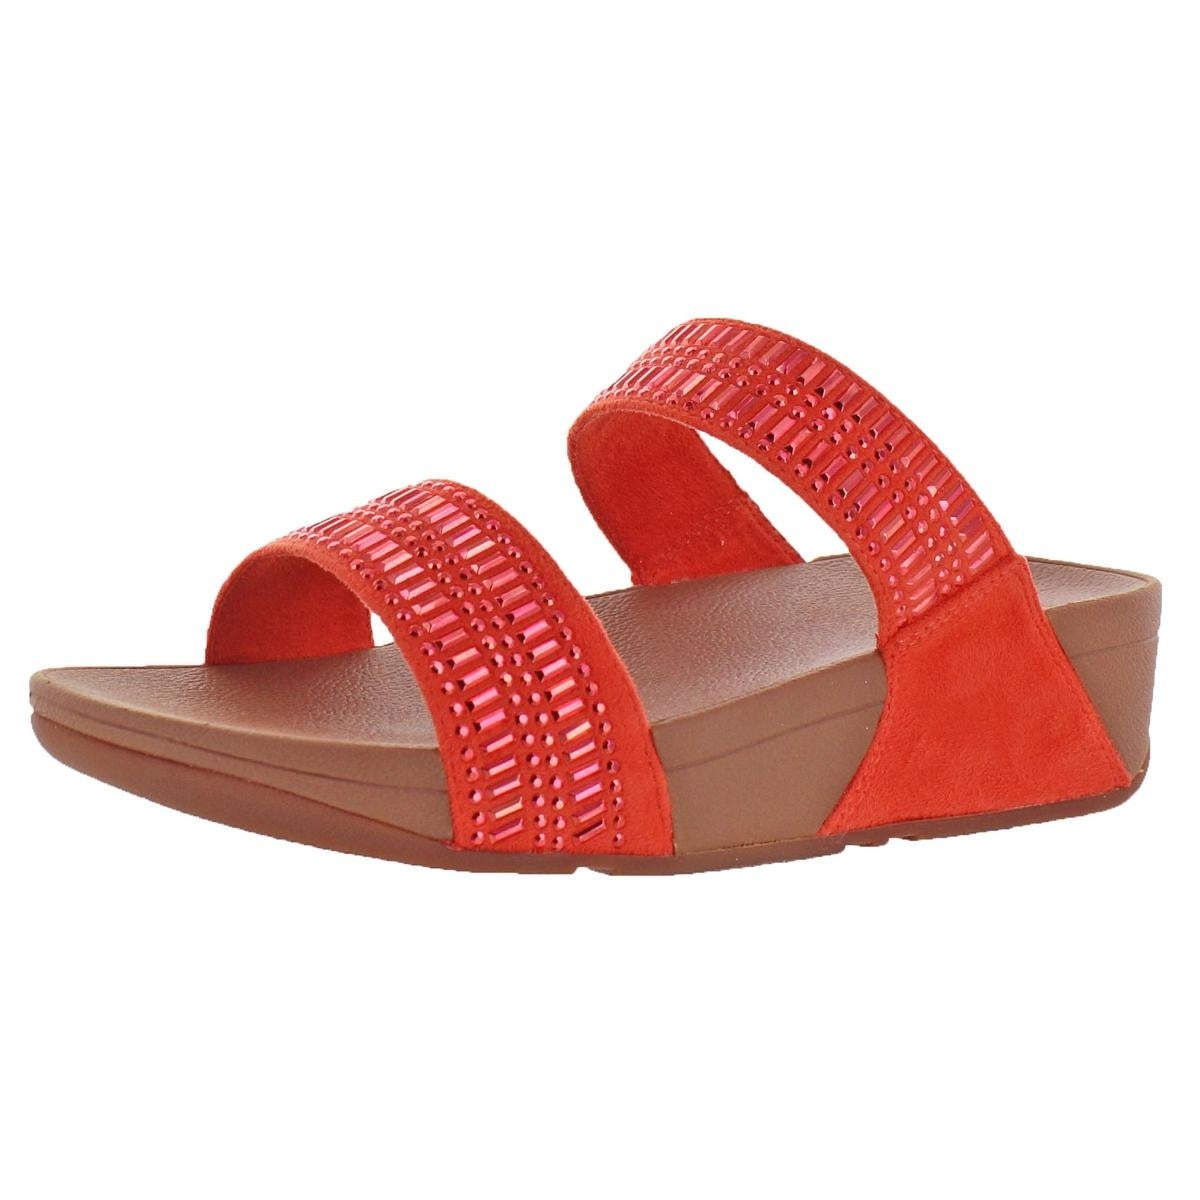 a858c75e4 Shop Fitflop Womens Incastone Slide Sandals Microwobbleboard Studded - Free  Shipping Today - Overstock - 26030238